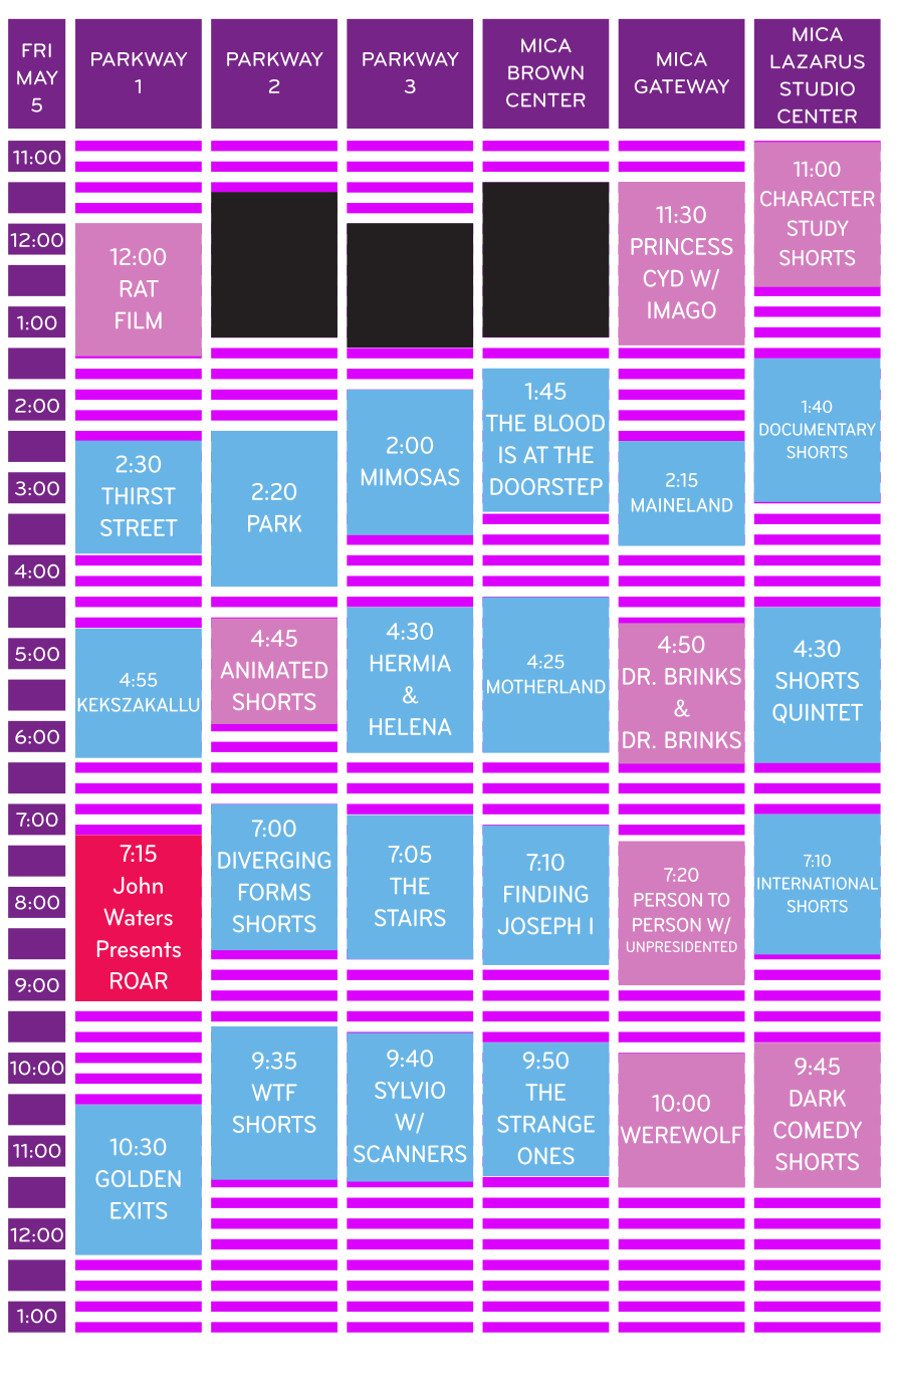 Friday May 5 Schedule Grid MdFF 2017